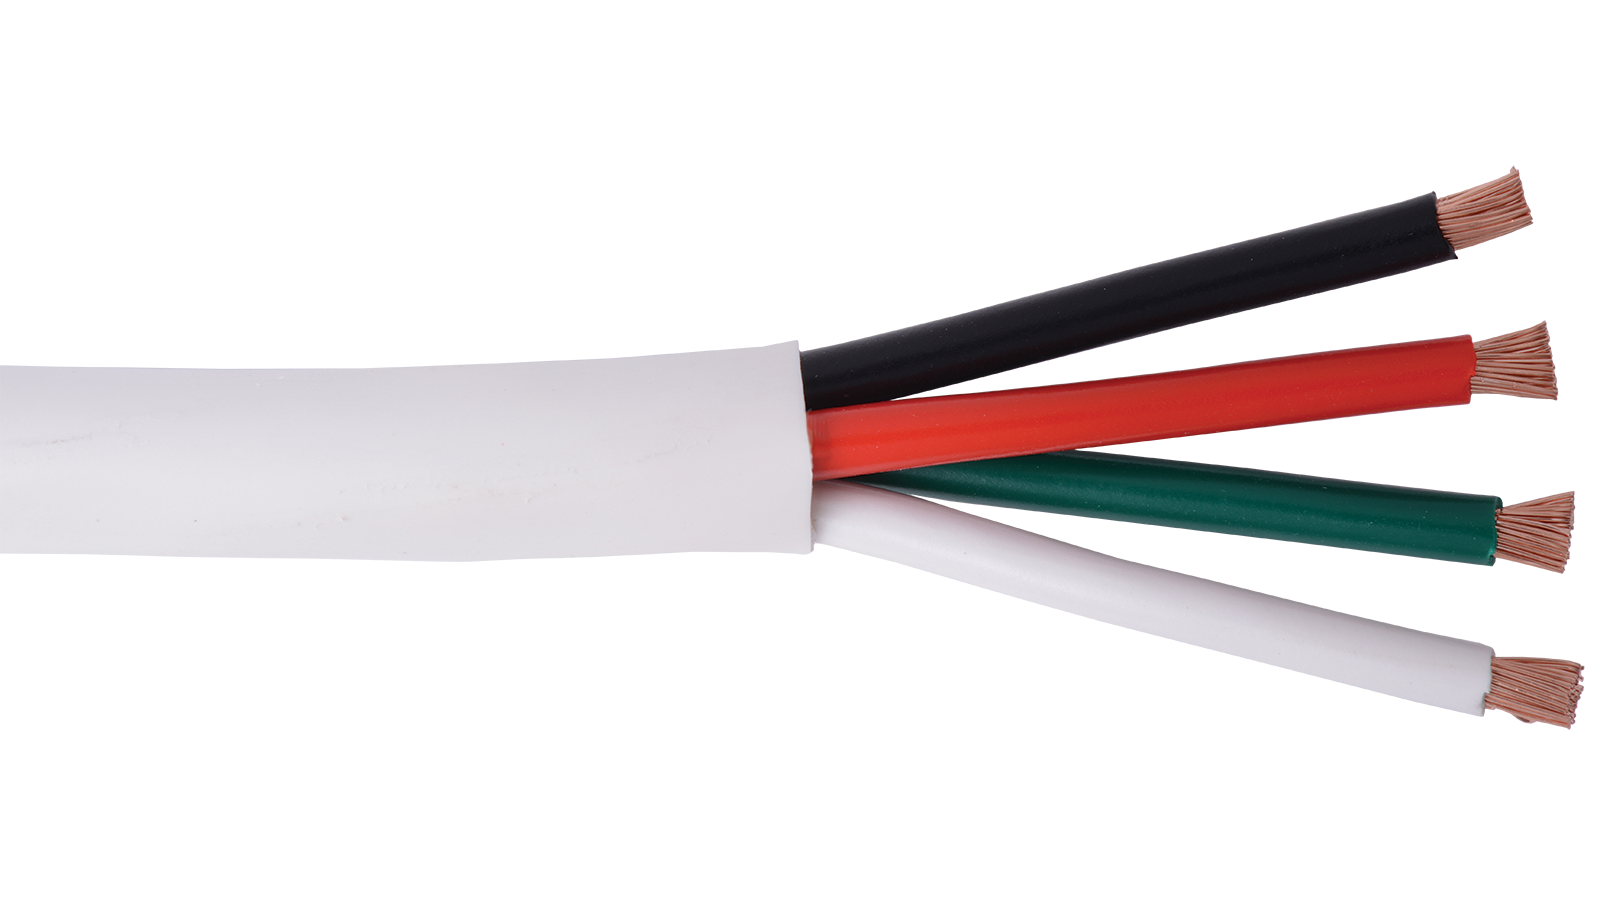 14-4C-KO+-WHT - KnockOut 14 AWG 4 conductor speaker cable